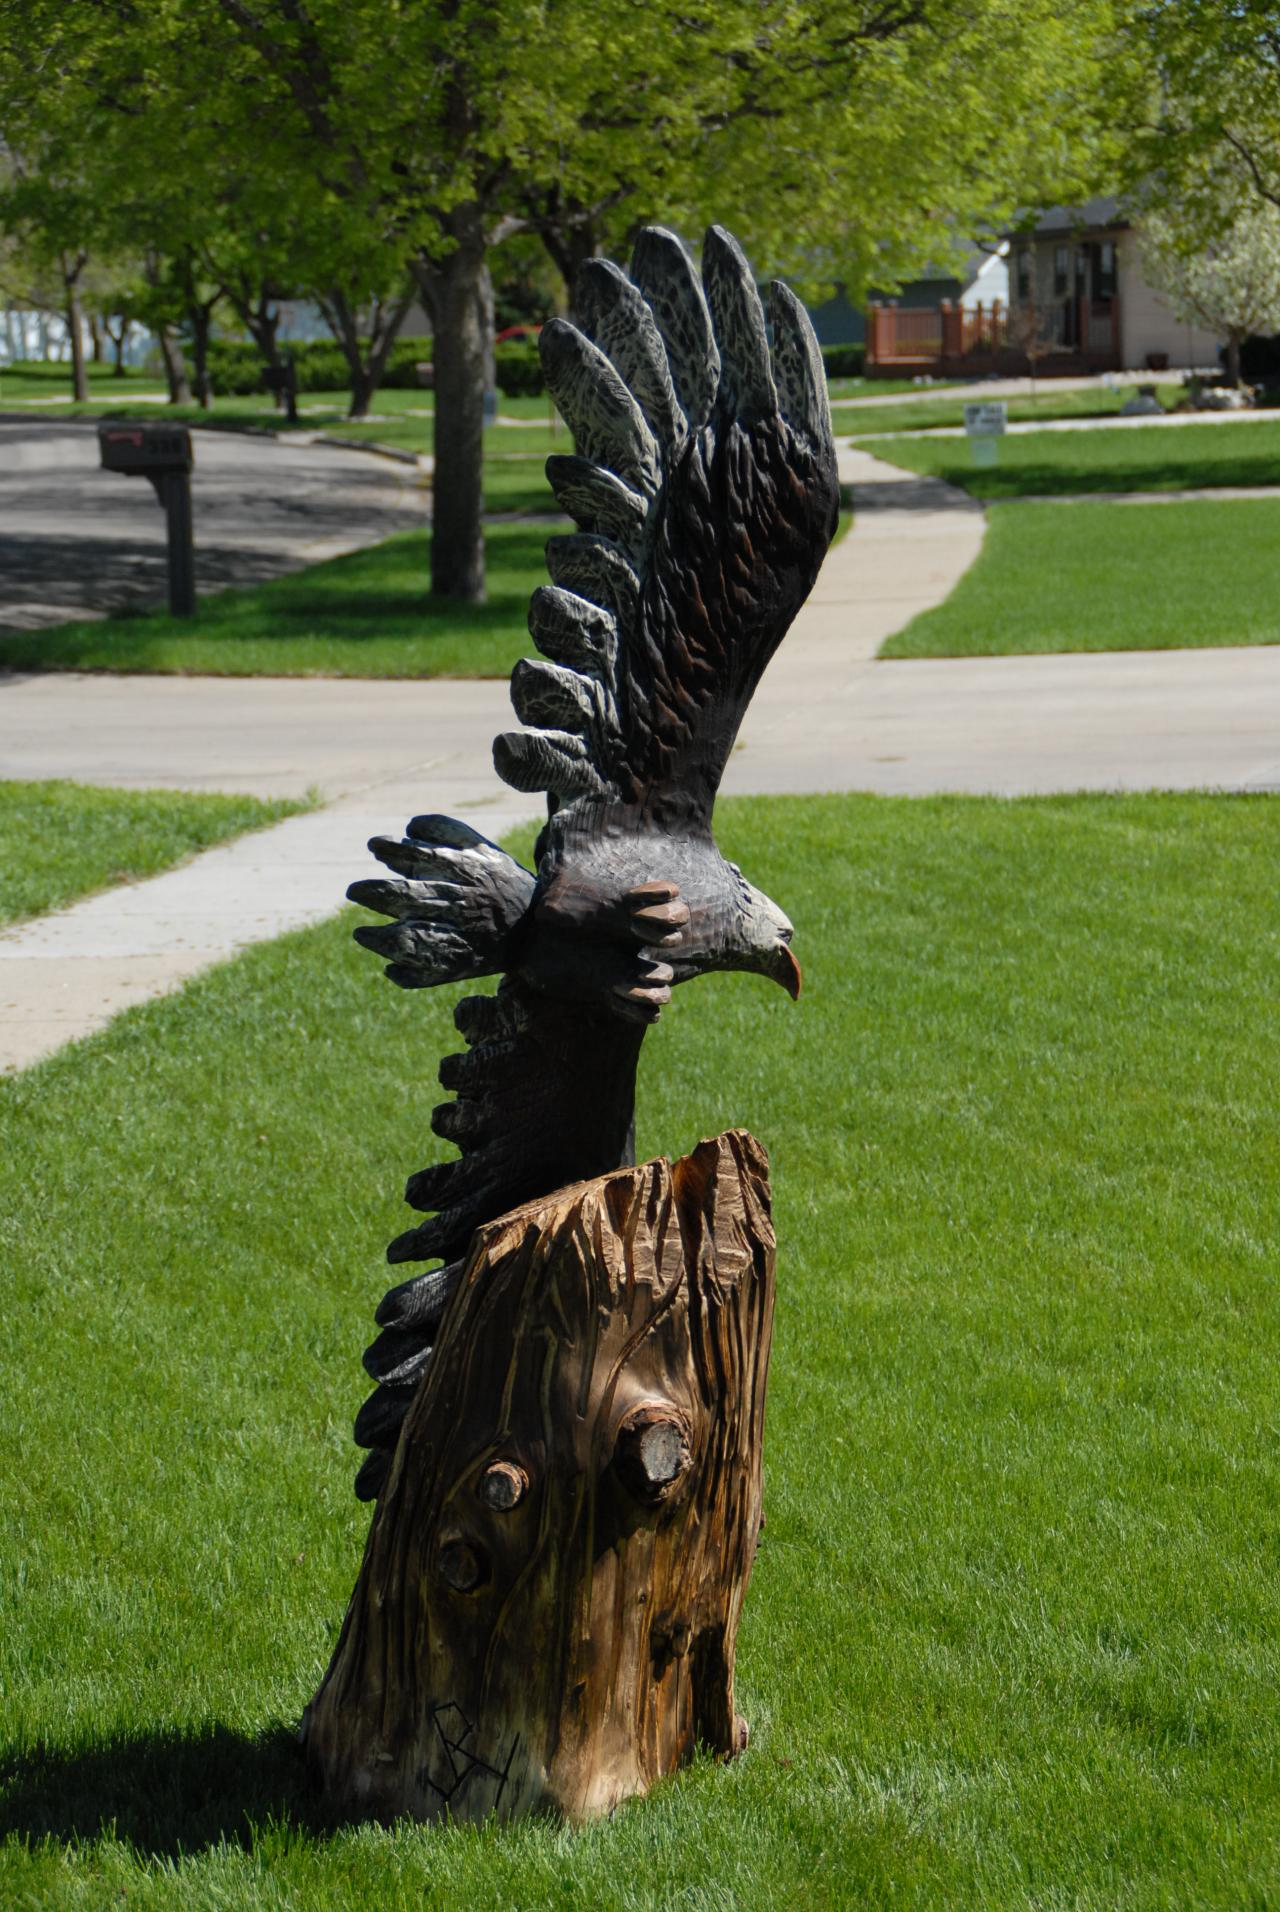 Carving post forum newest eagle